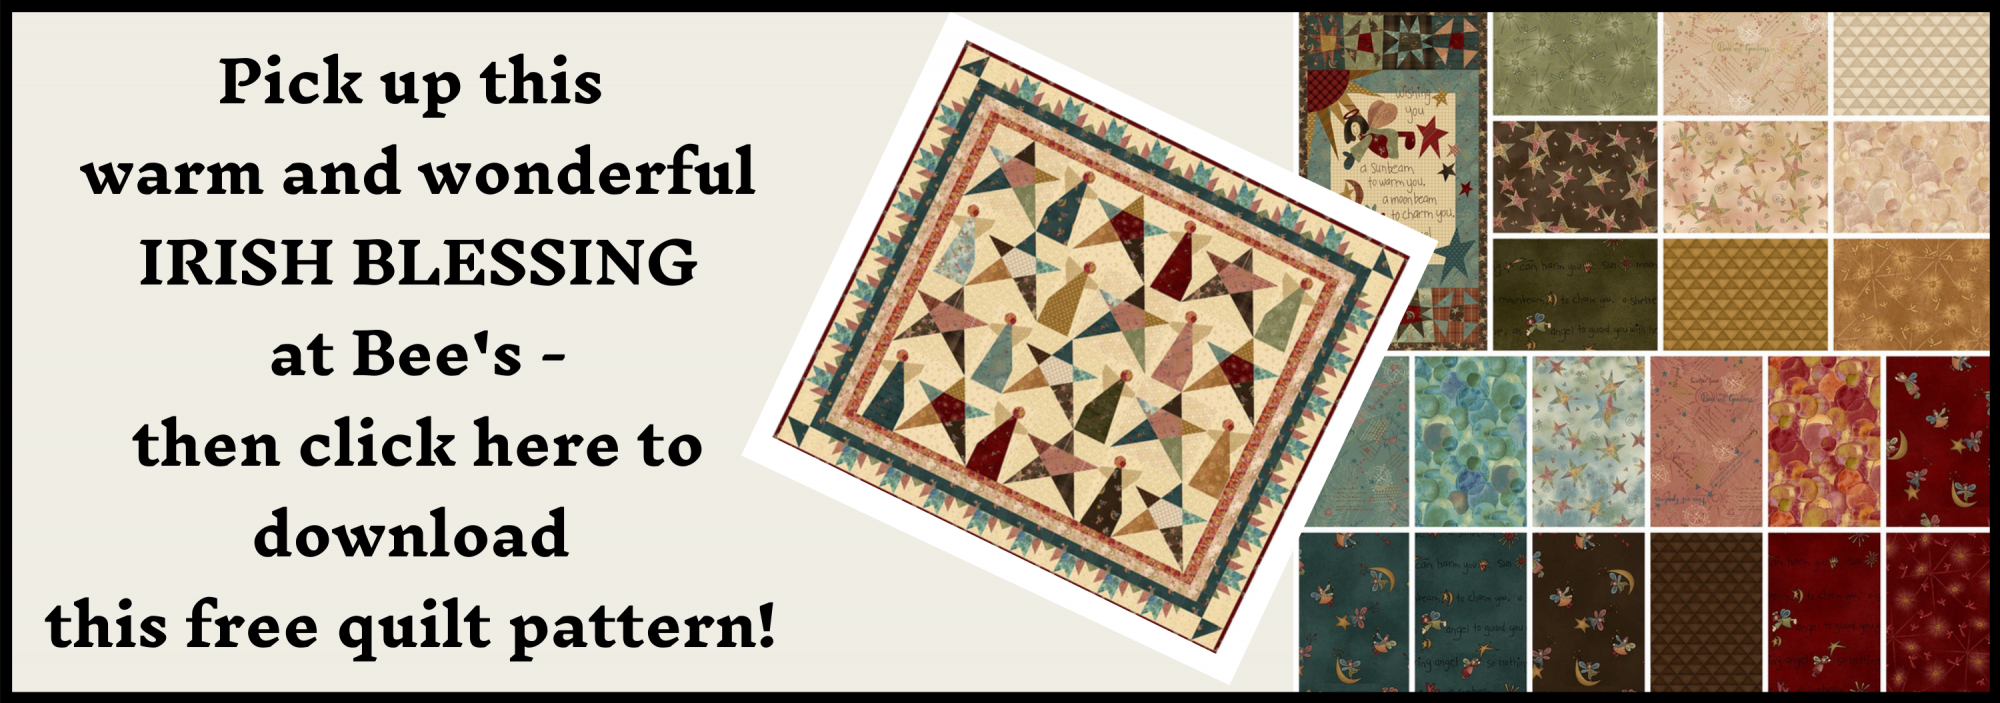 bee's quilt shop st augustine henry glass fabrics irish blessing